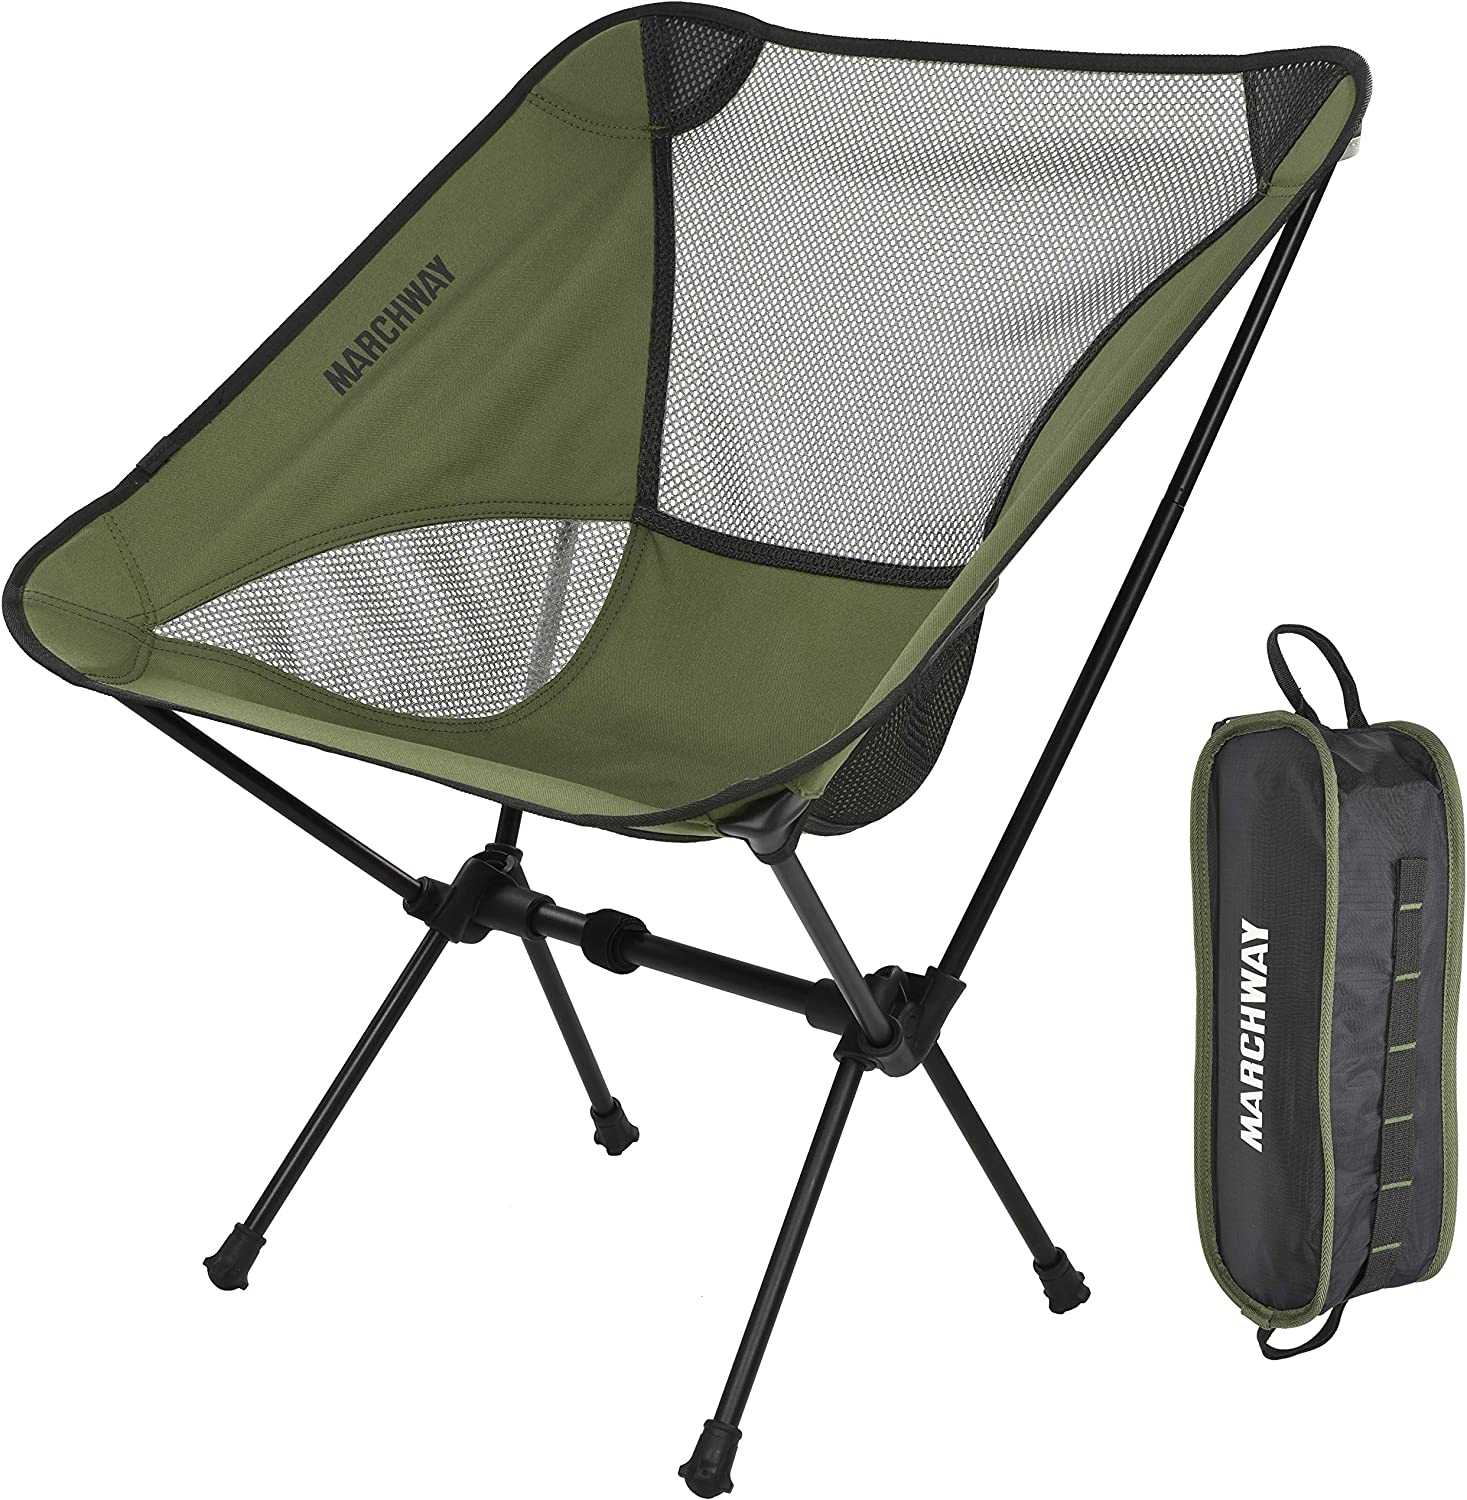 MARCHWAY shipfree Ultralight Folding Camping Chair famous Compact for Portable